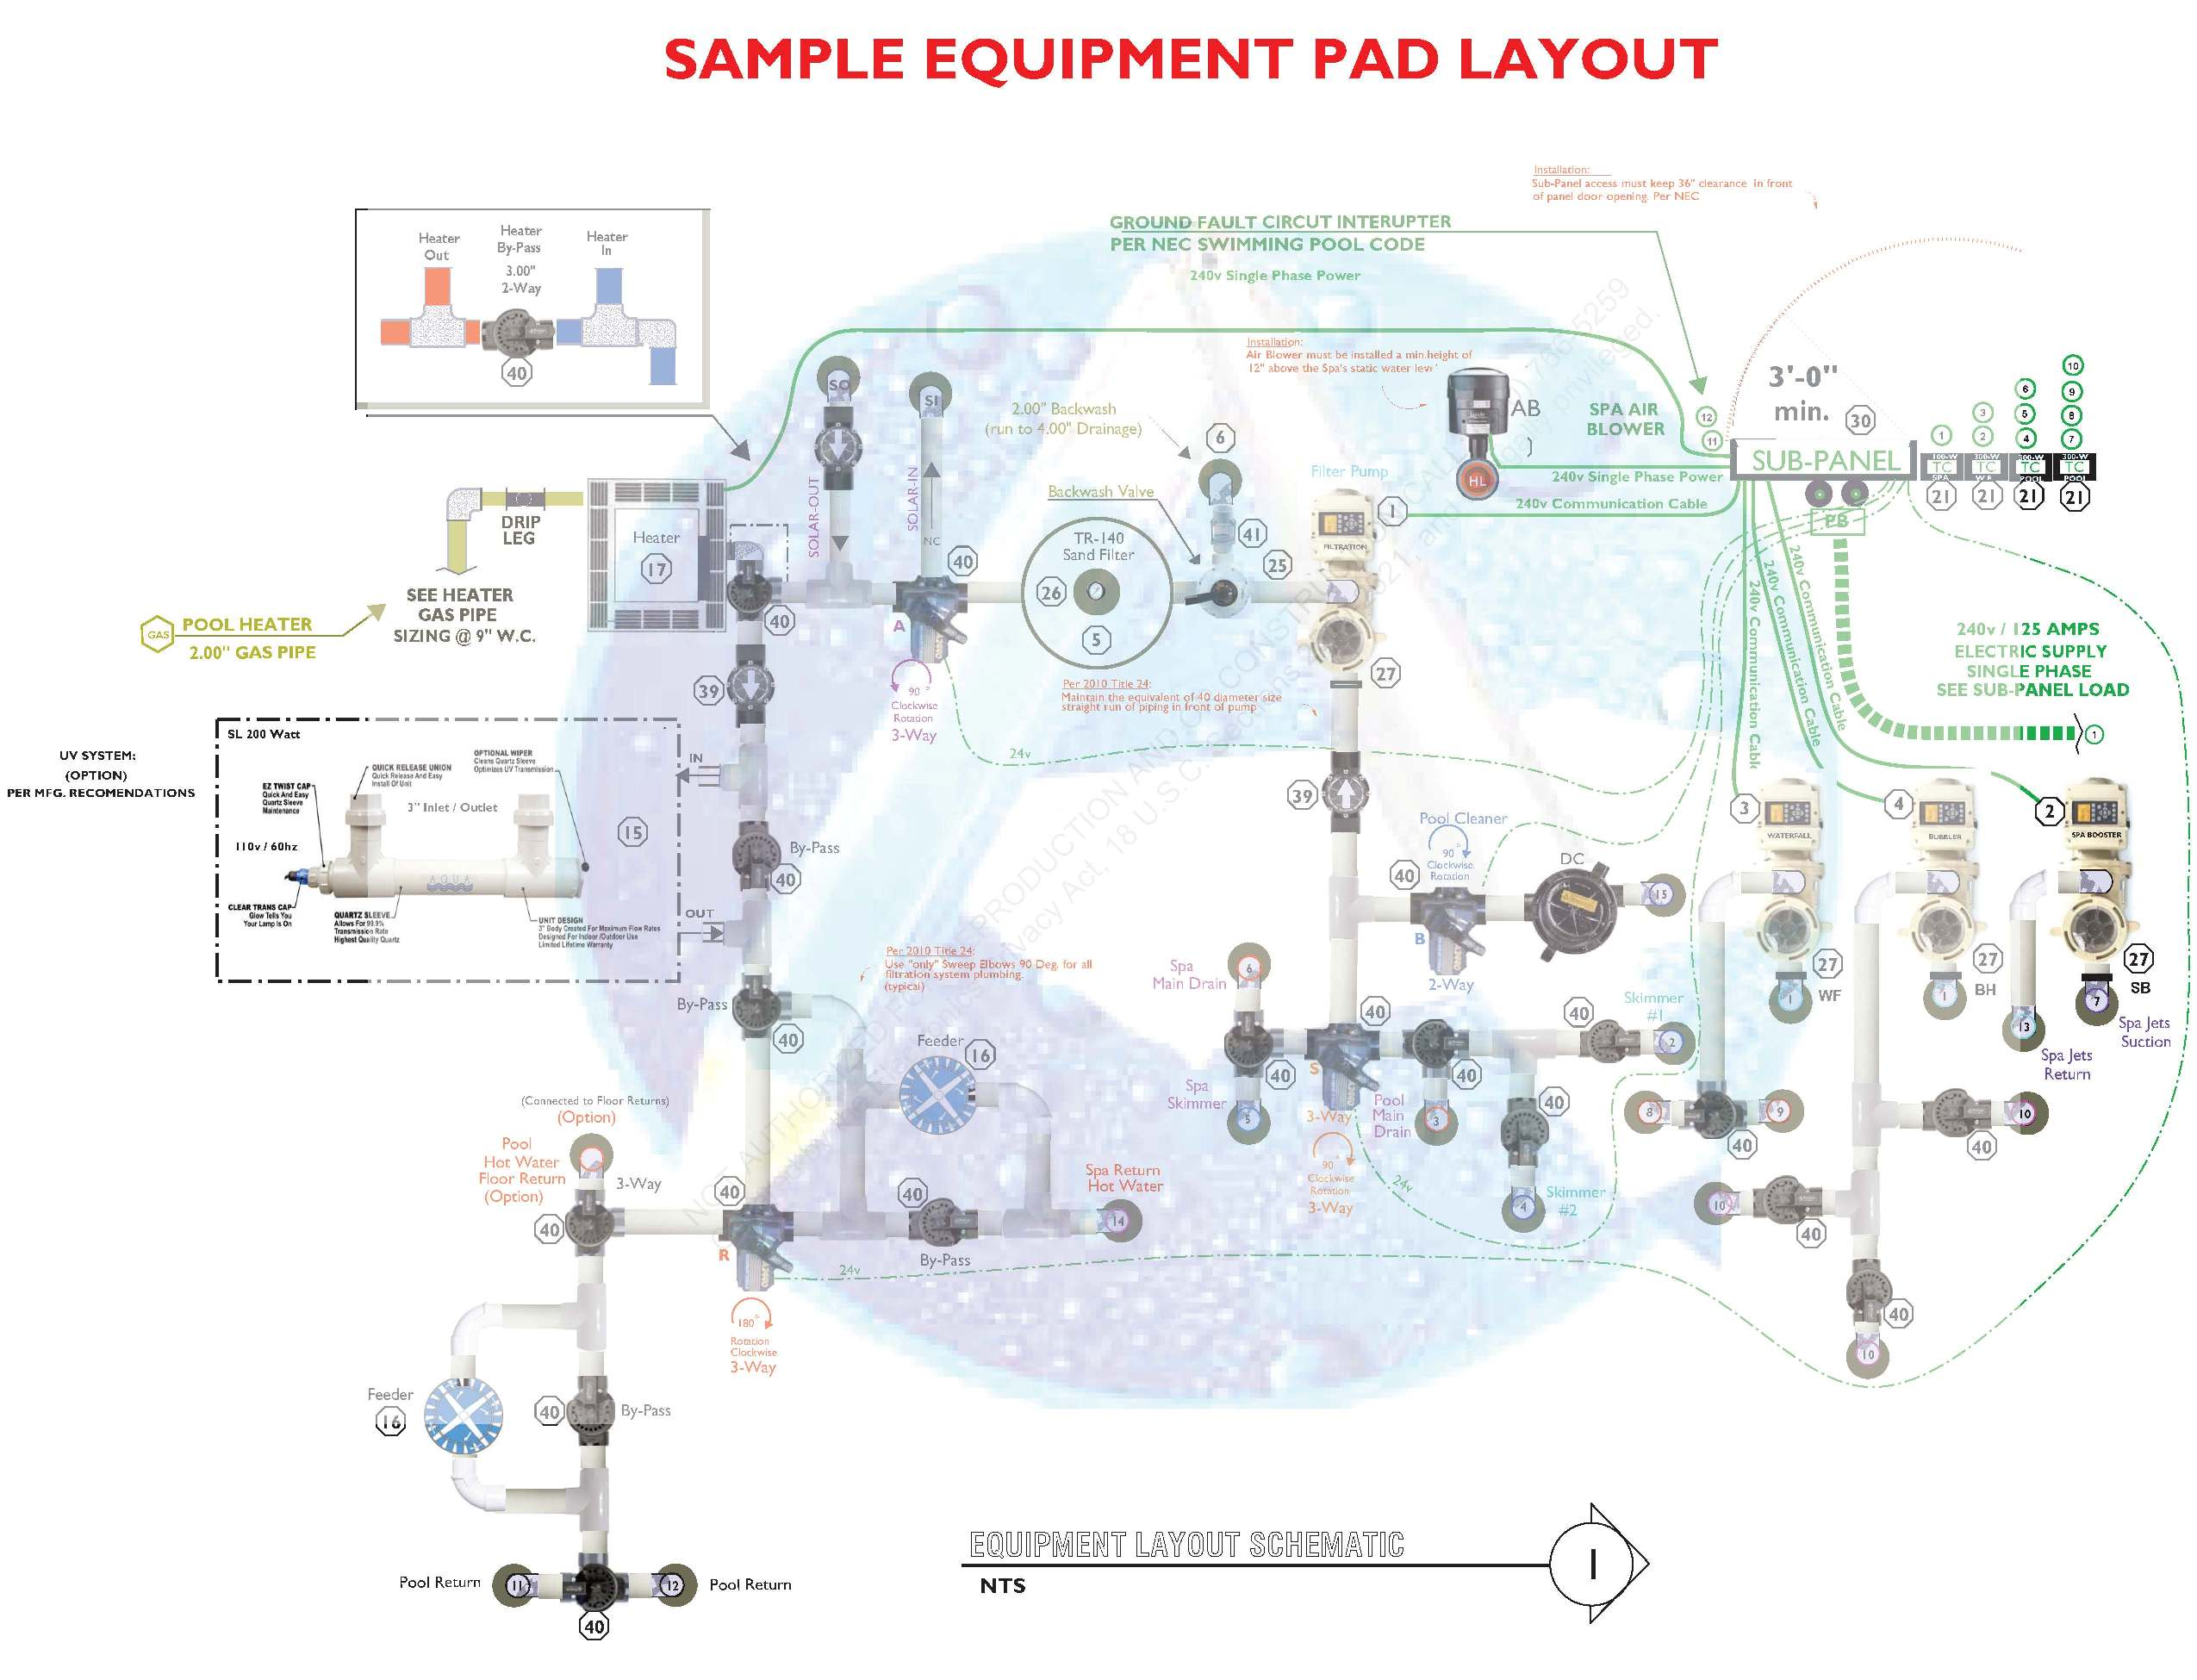 EQUIPMENT PAD LAYOUT